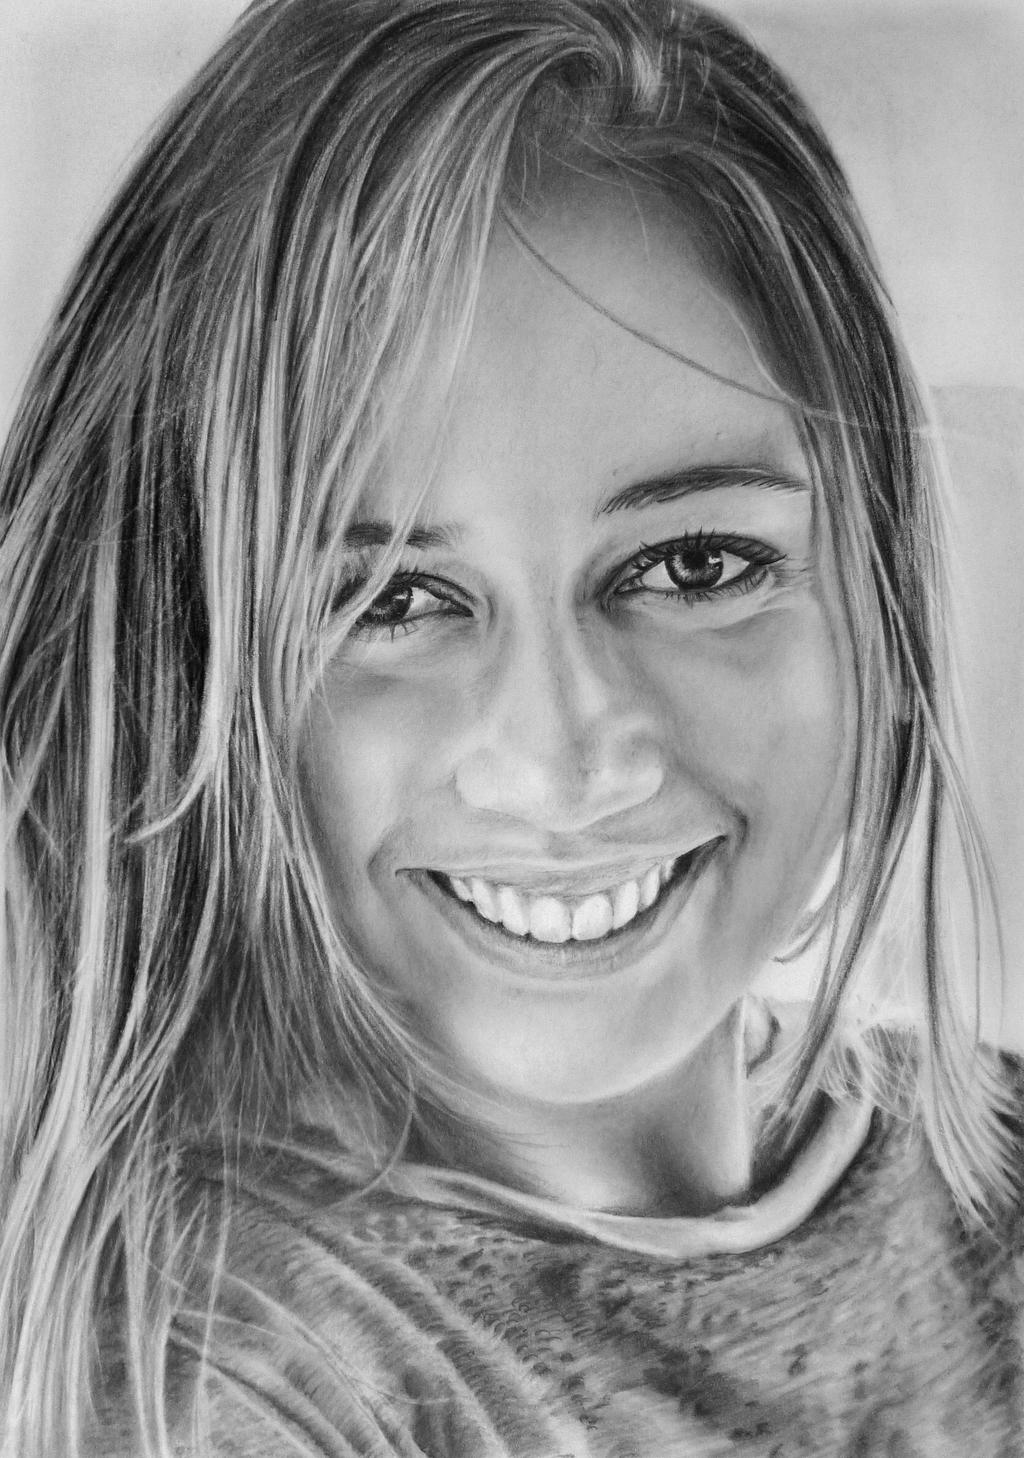 Pencil portrait of My by LateStarter63 on deviantART